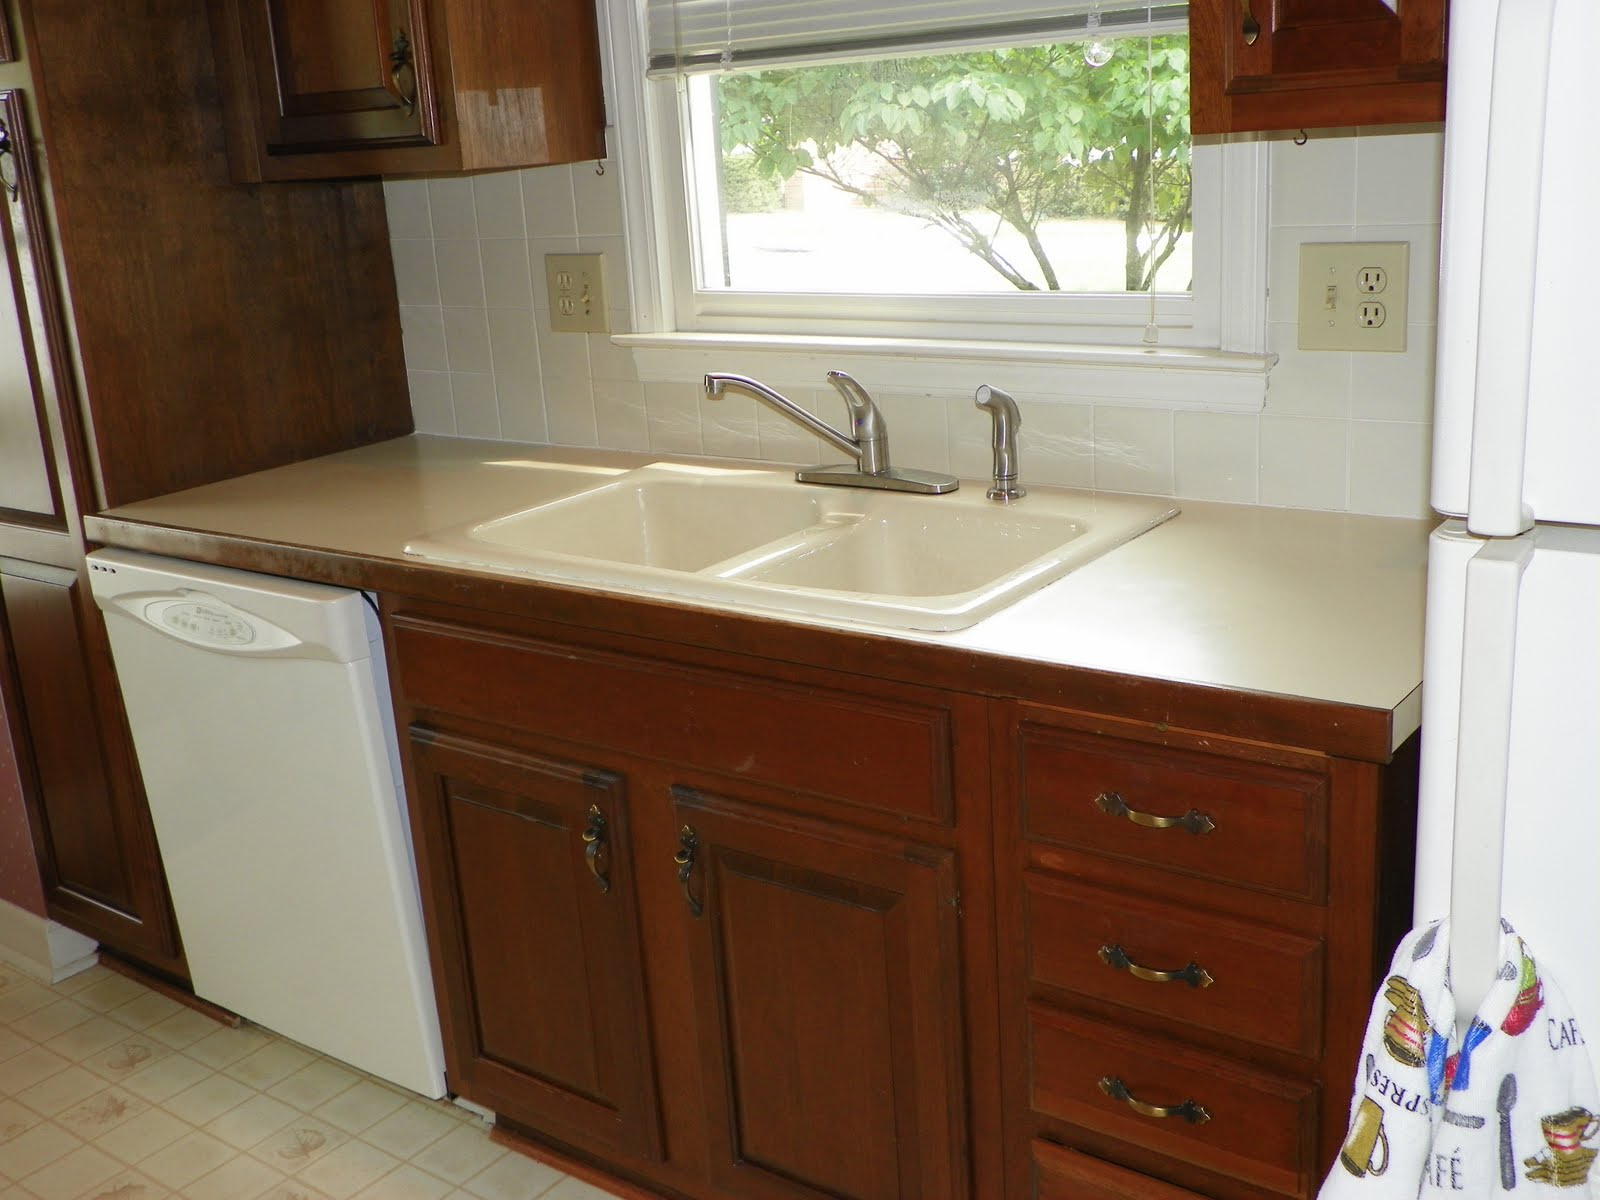 Colors Of Corian Countertops The Solid Surface And Stone Countertop Repair Blog Retro